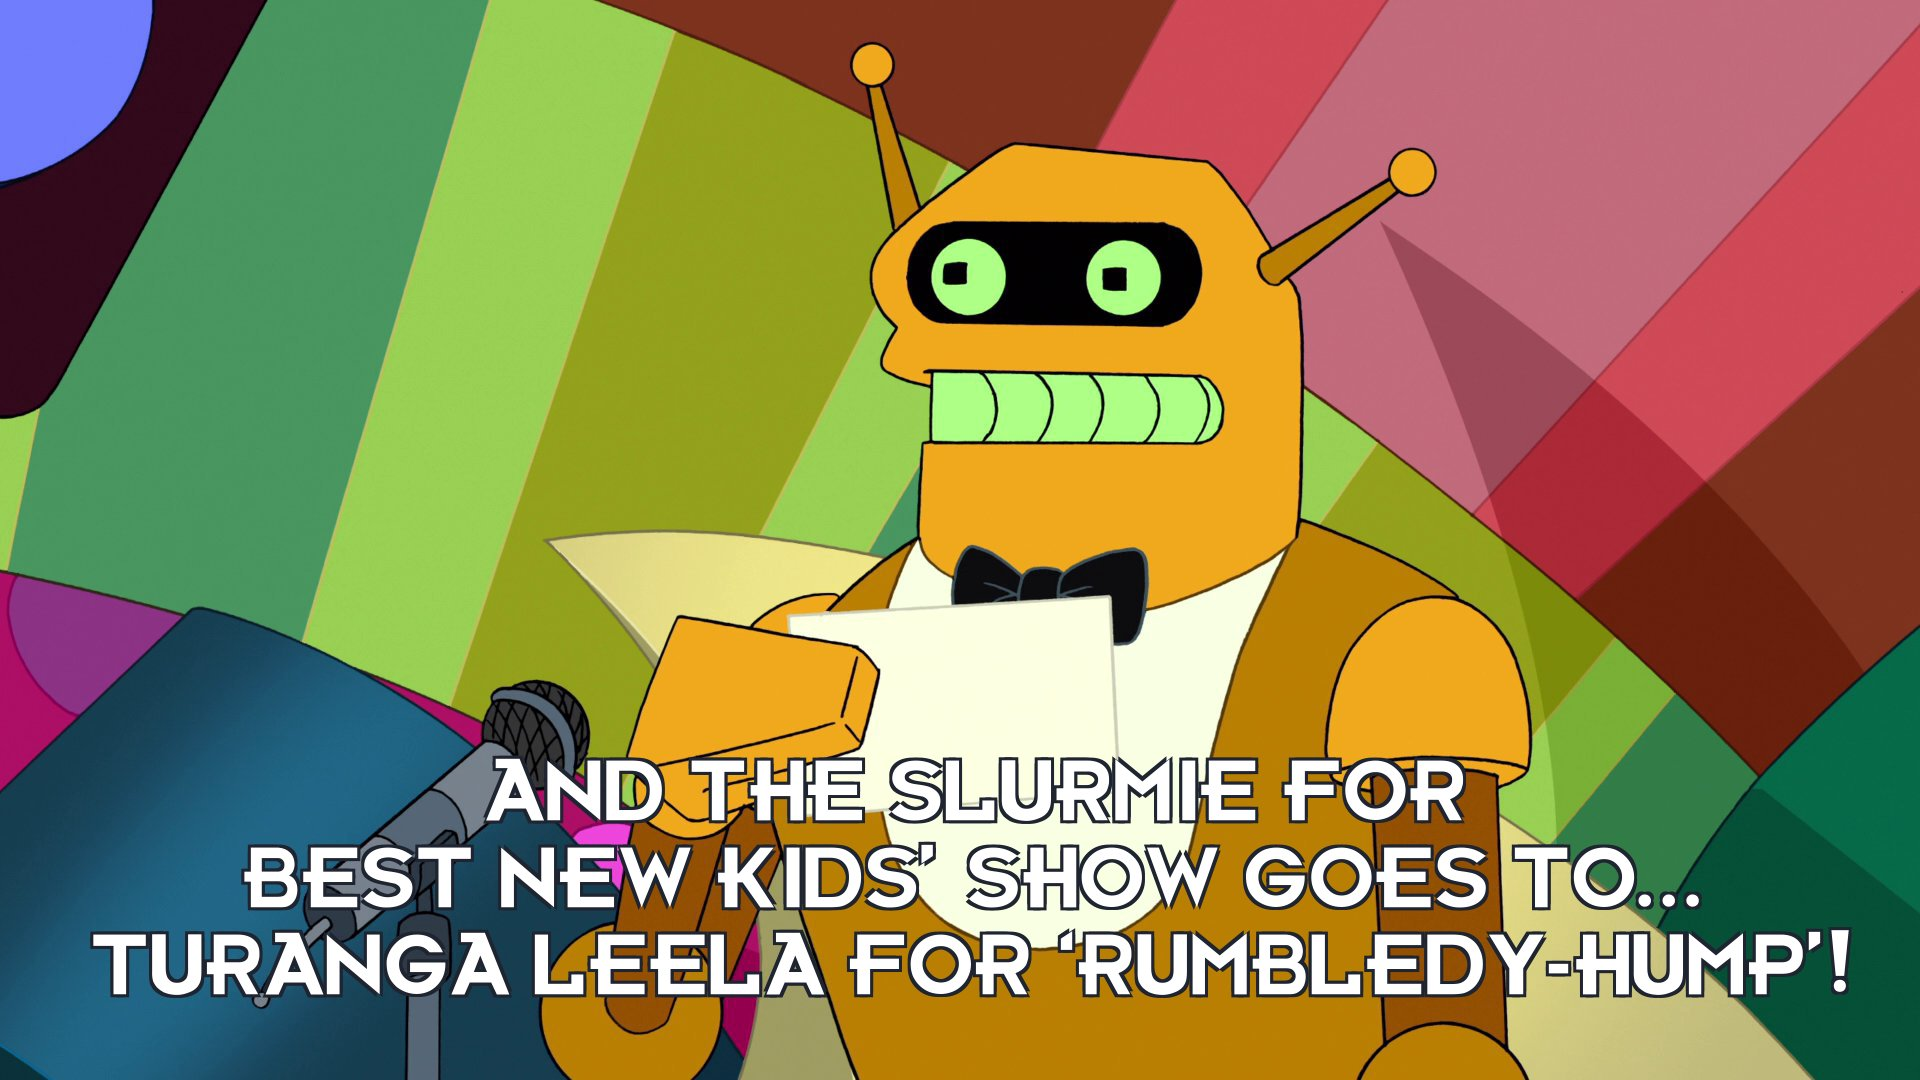 Calculon: And the Slurmie for Best New Kids' Show goes to... Turanga Leela for 'Rumbledy-Hump'!